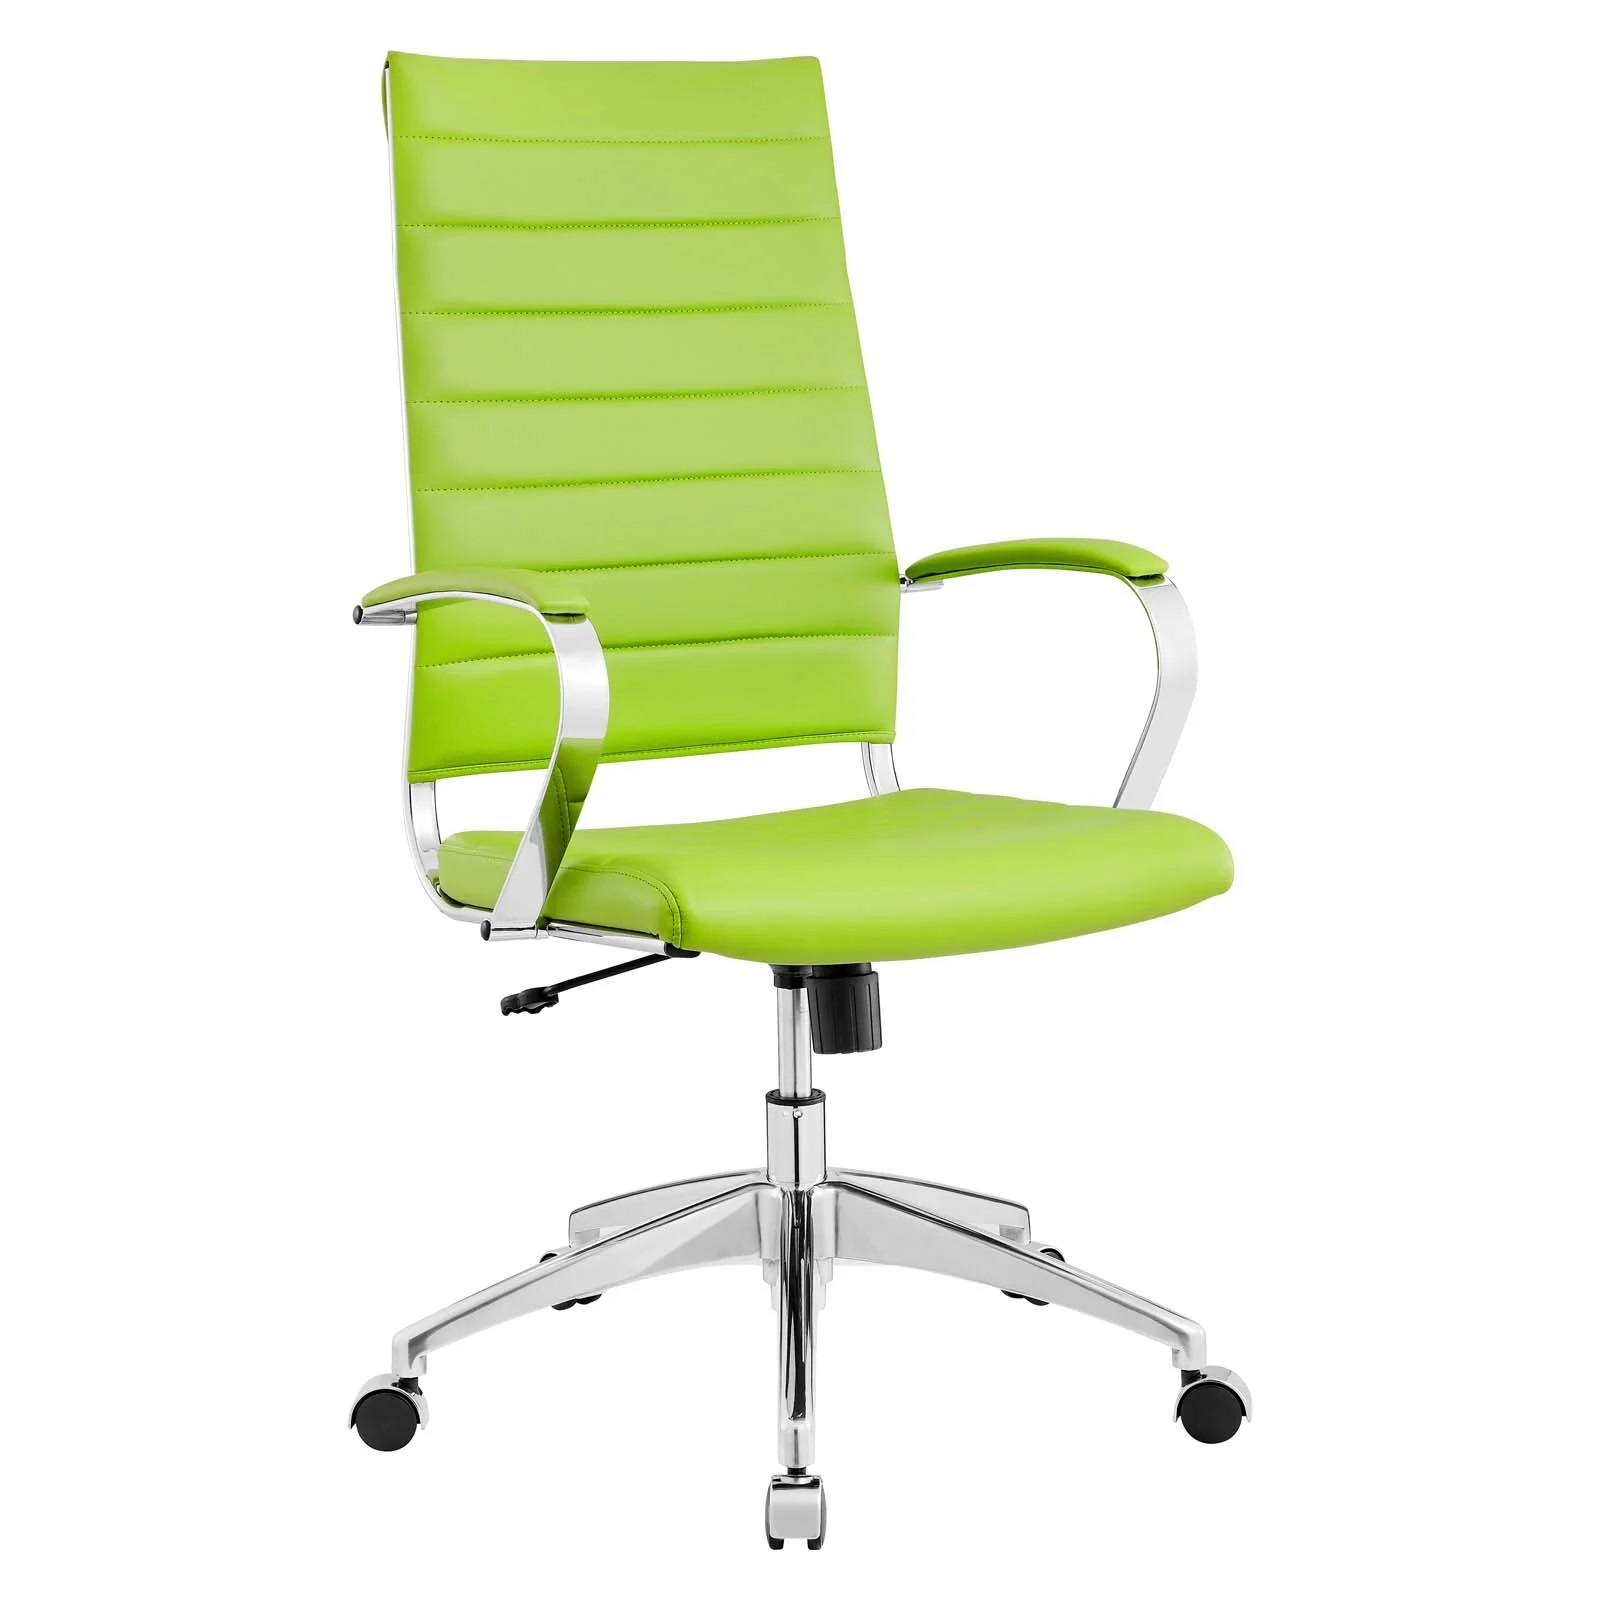 Highback Office Chair in Bright Green